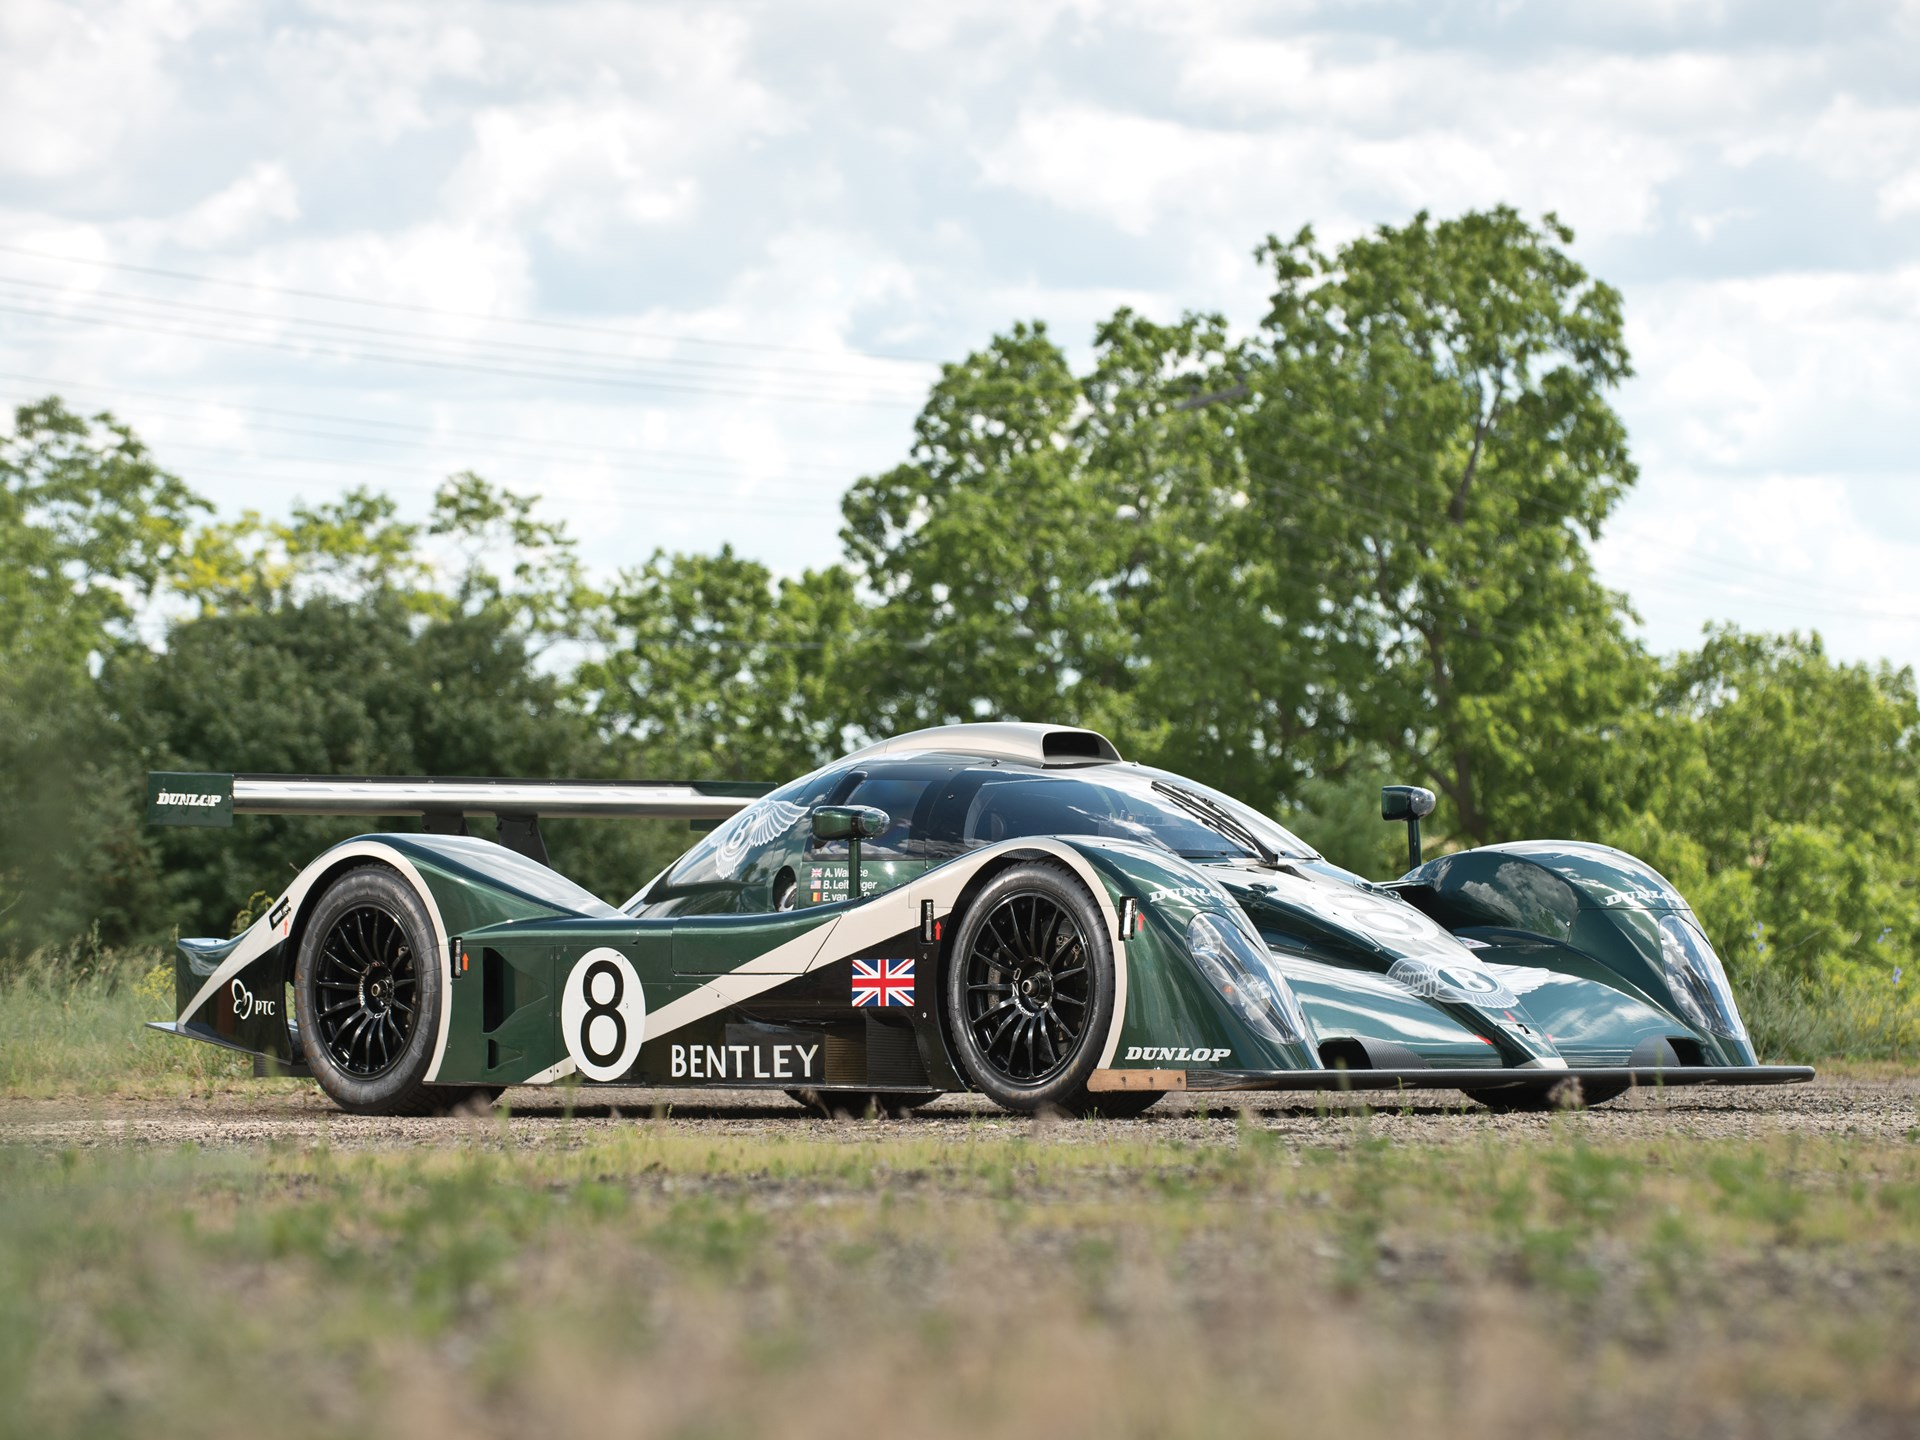 rm sotheby's - 2001 bentley speed 8 le mans prototype racing car